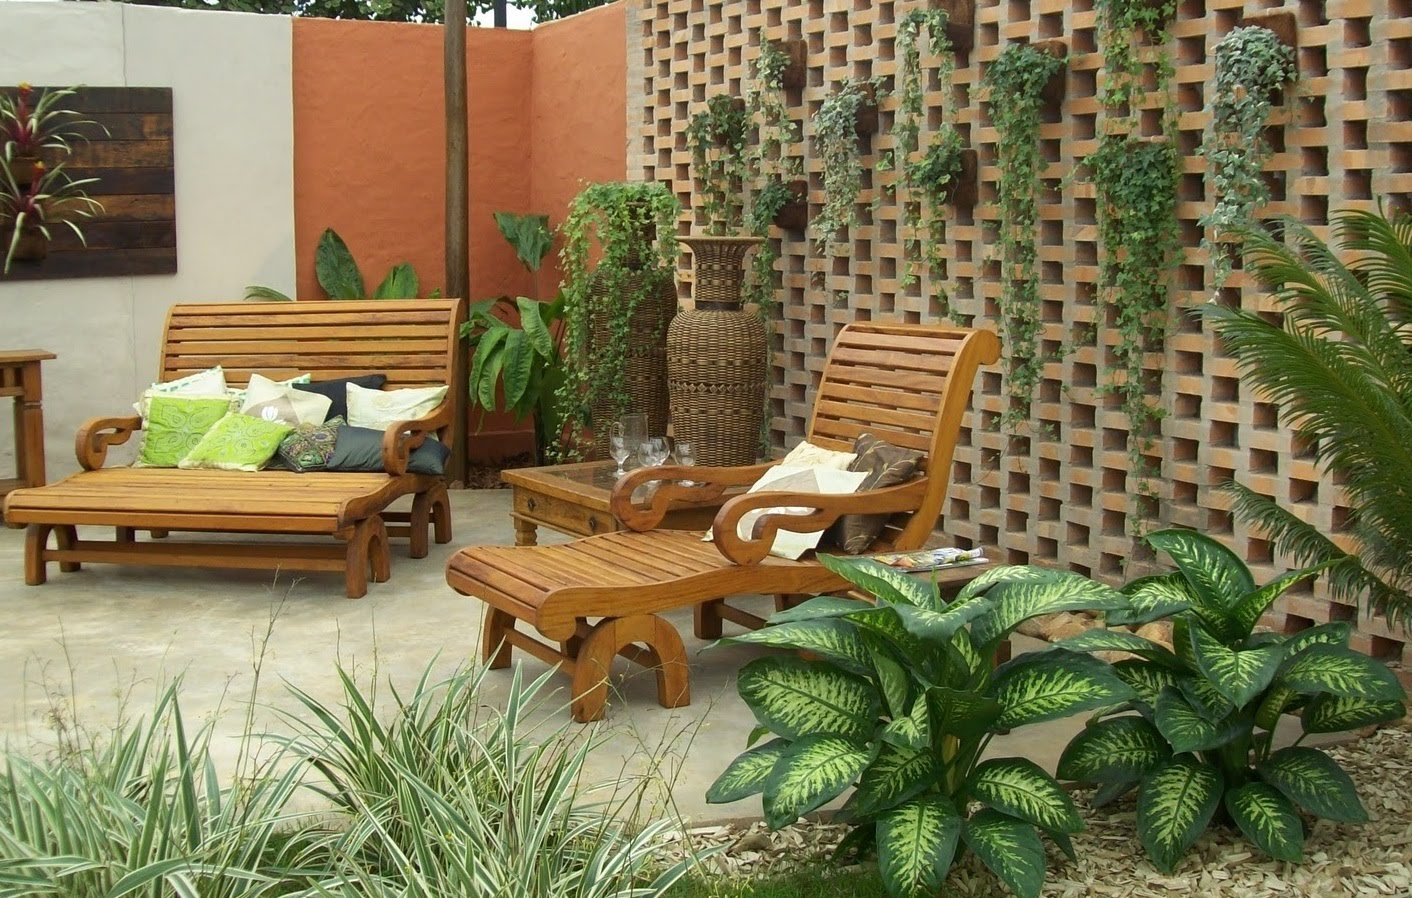 Jardines r sticos tendencia e ideas hoy lowcost for Ideas de decoracion de jardines